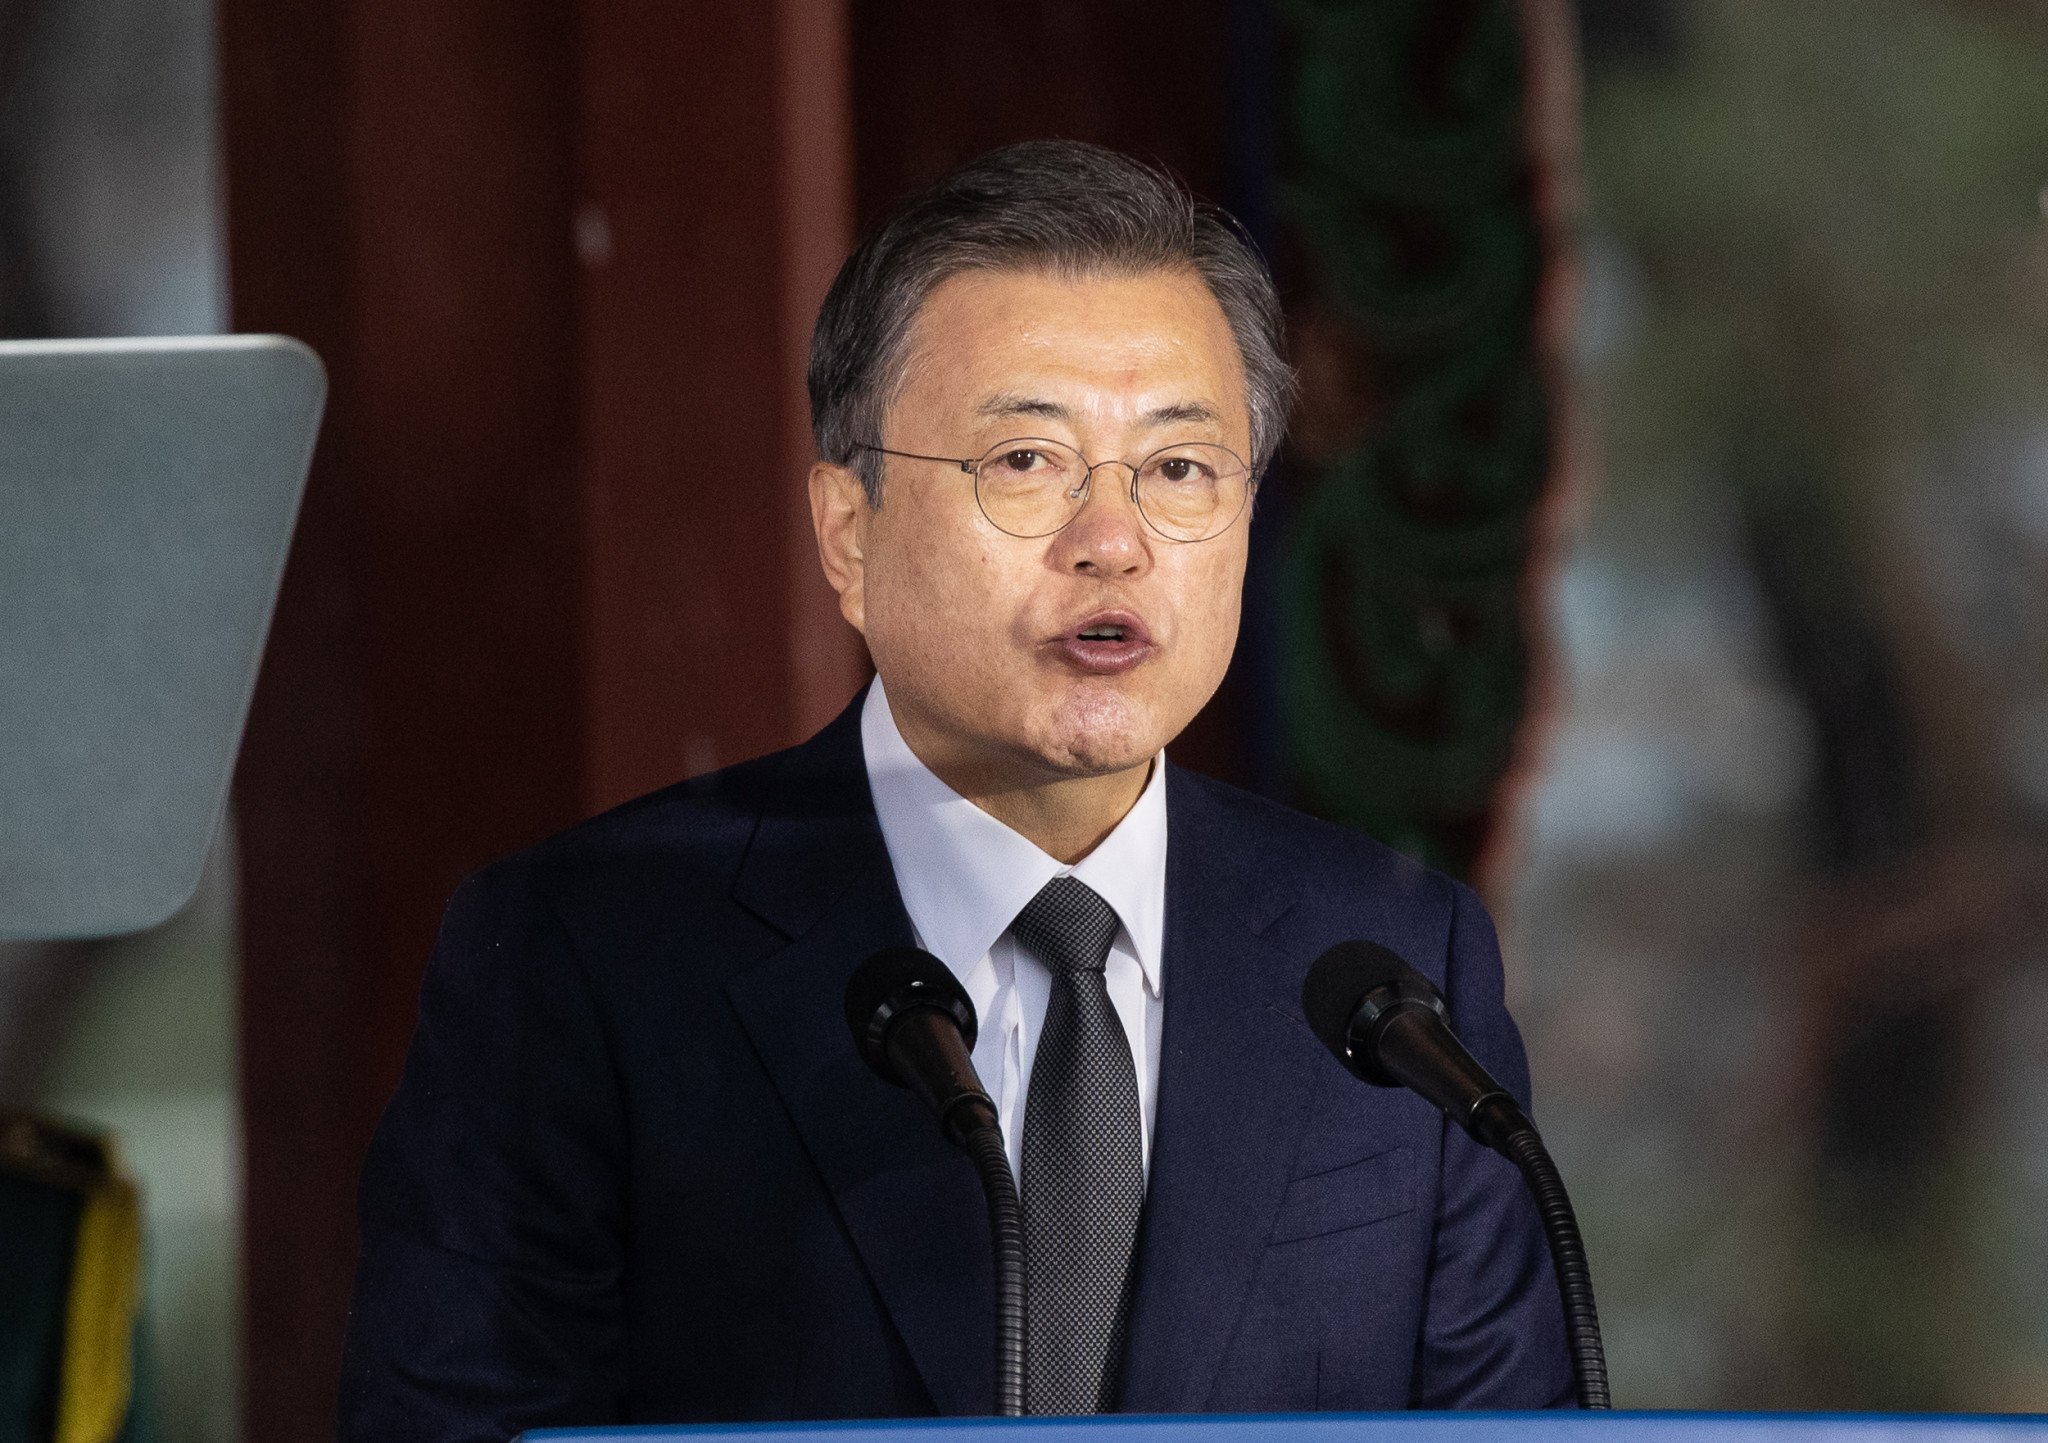 President Moon hopeful Tokyo 2020 will be opportunity for dialogue between North and South Korea